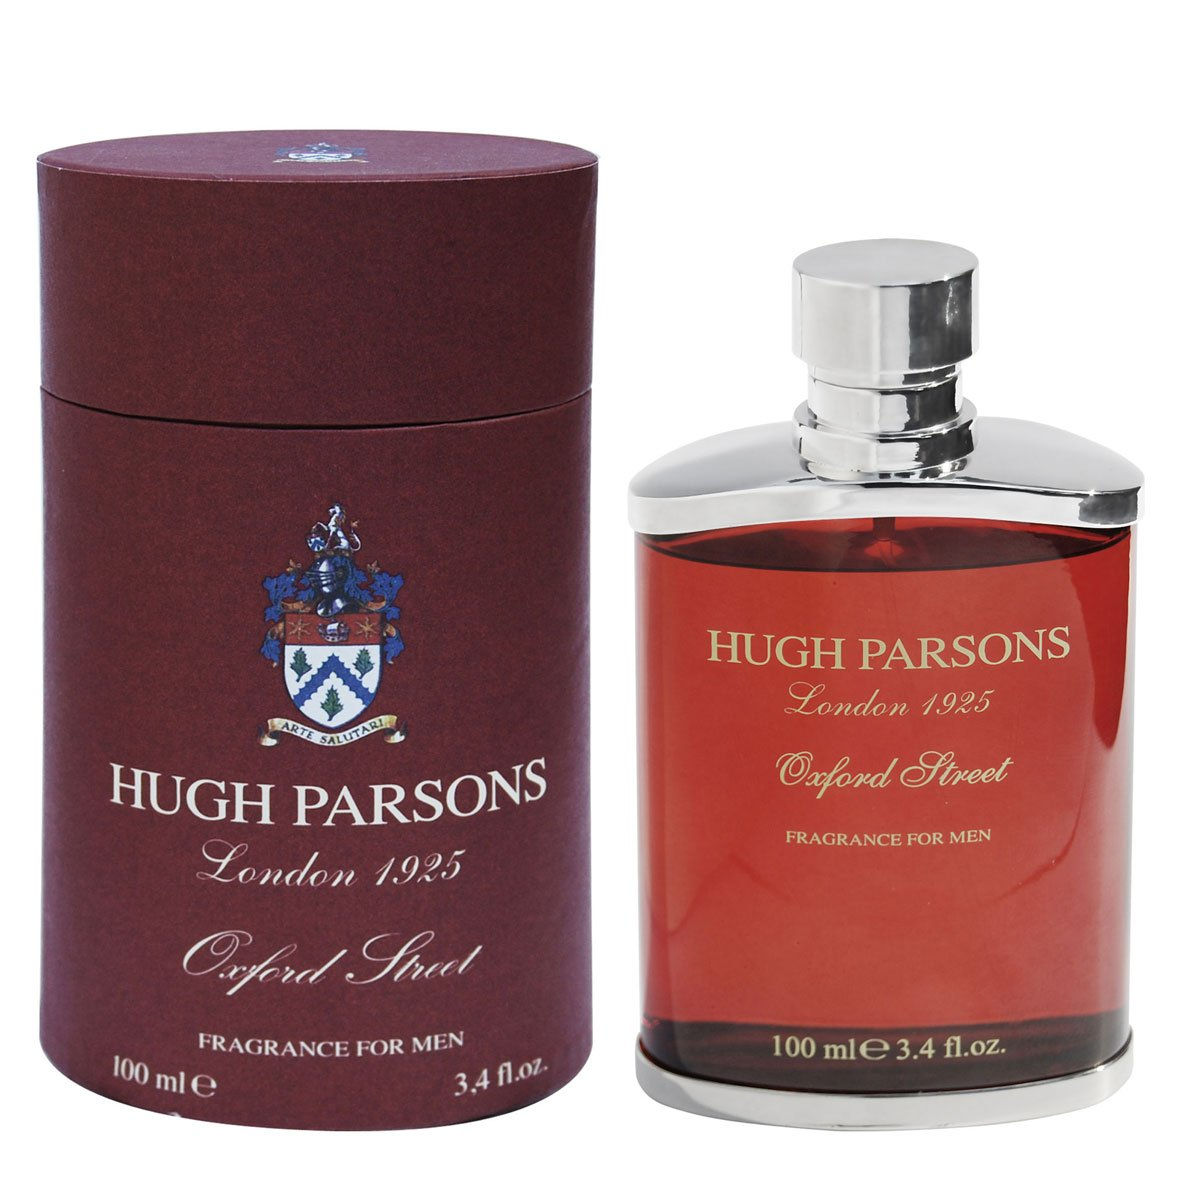 Amazon.com : Hugh Parsons Oxford Street Eau De Parfum Spray for Men, 3.4 Ounce : Beauty